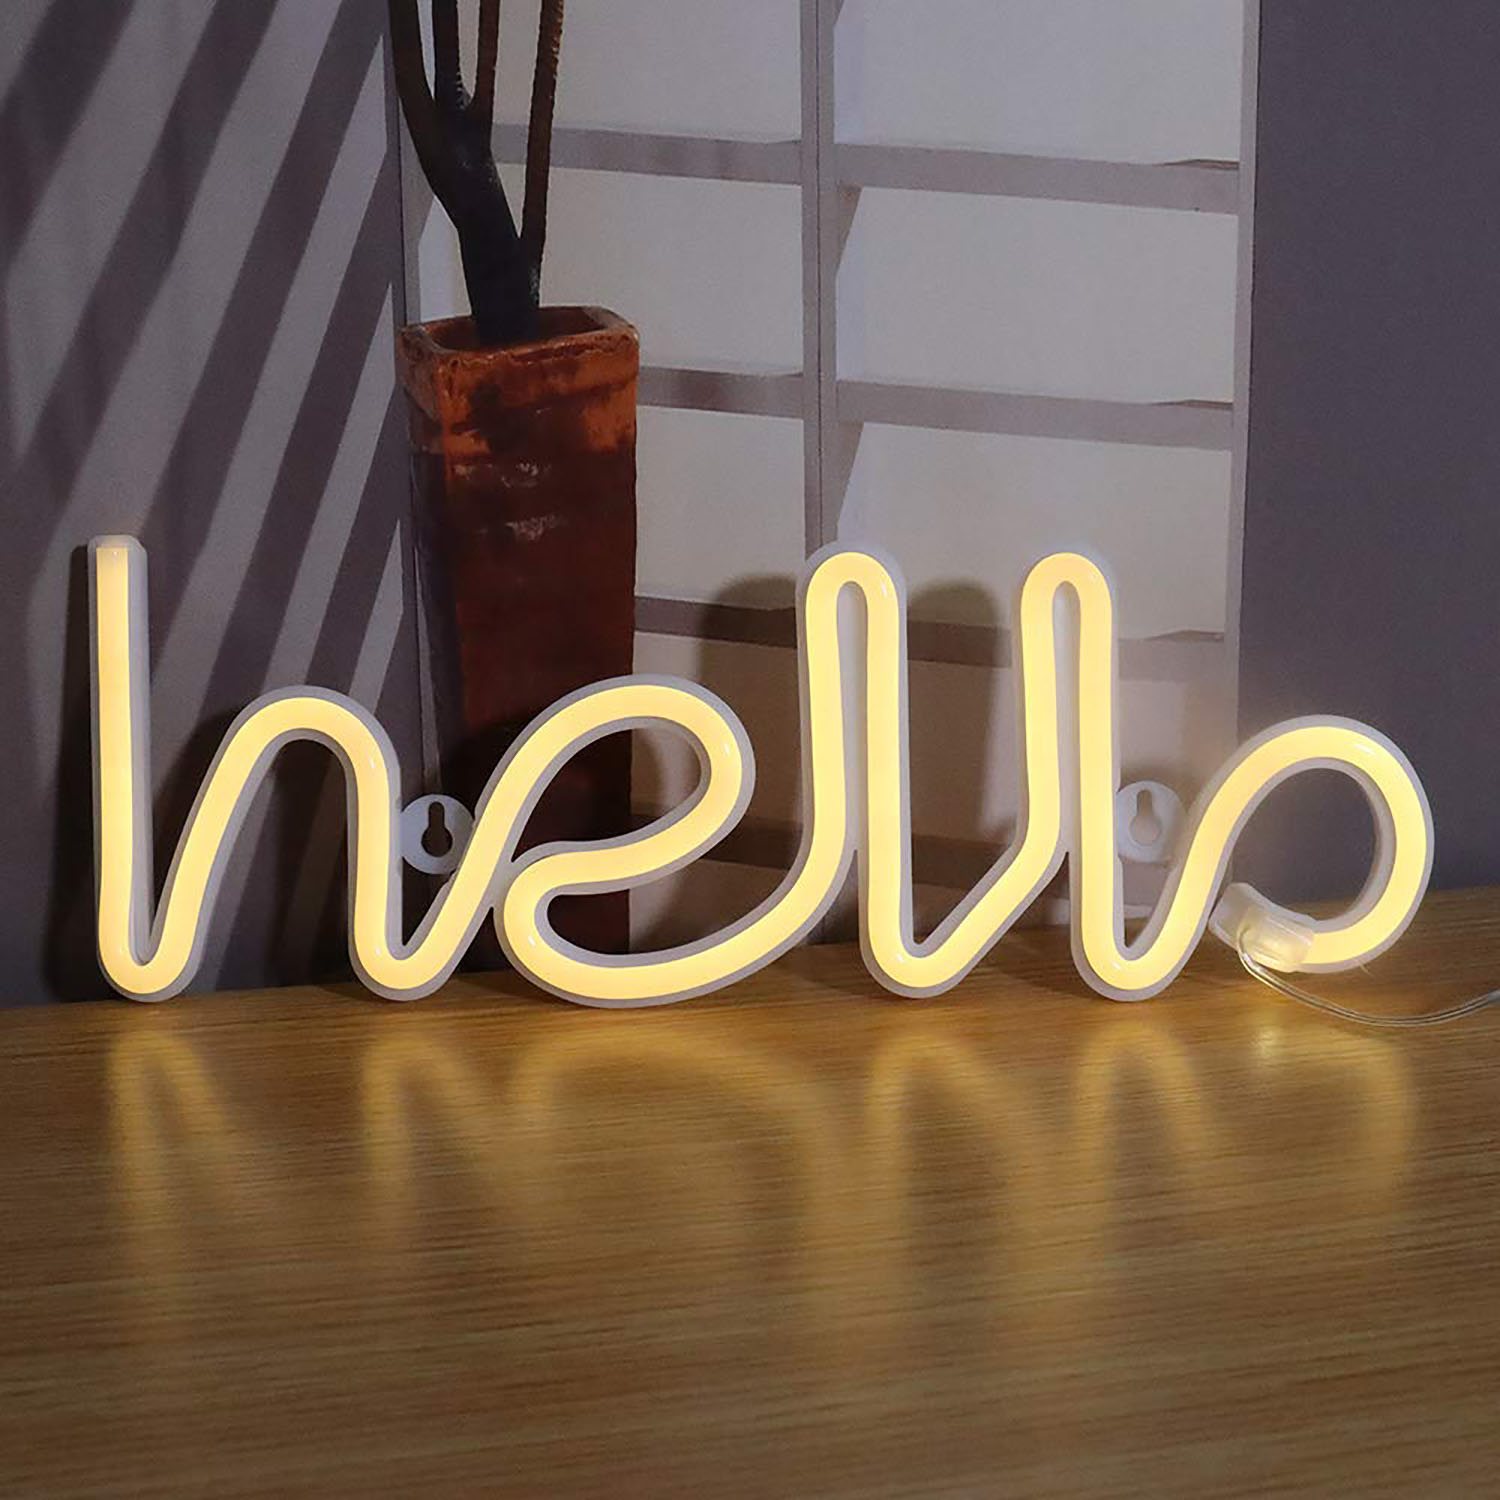 Led Neon Hello Sign Shape Wall Sign Halloween For Cool Light Wall Art Bedroom Decorations Home Accessories Party Holiday Decor Walmart Canada